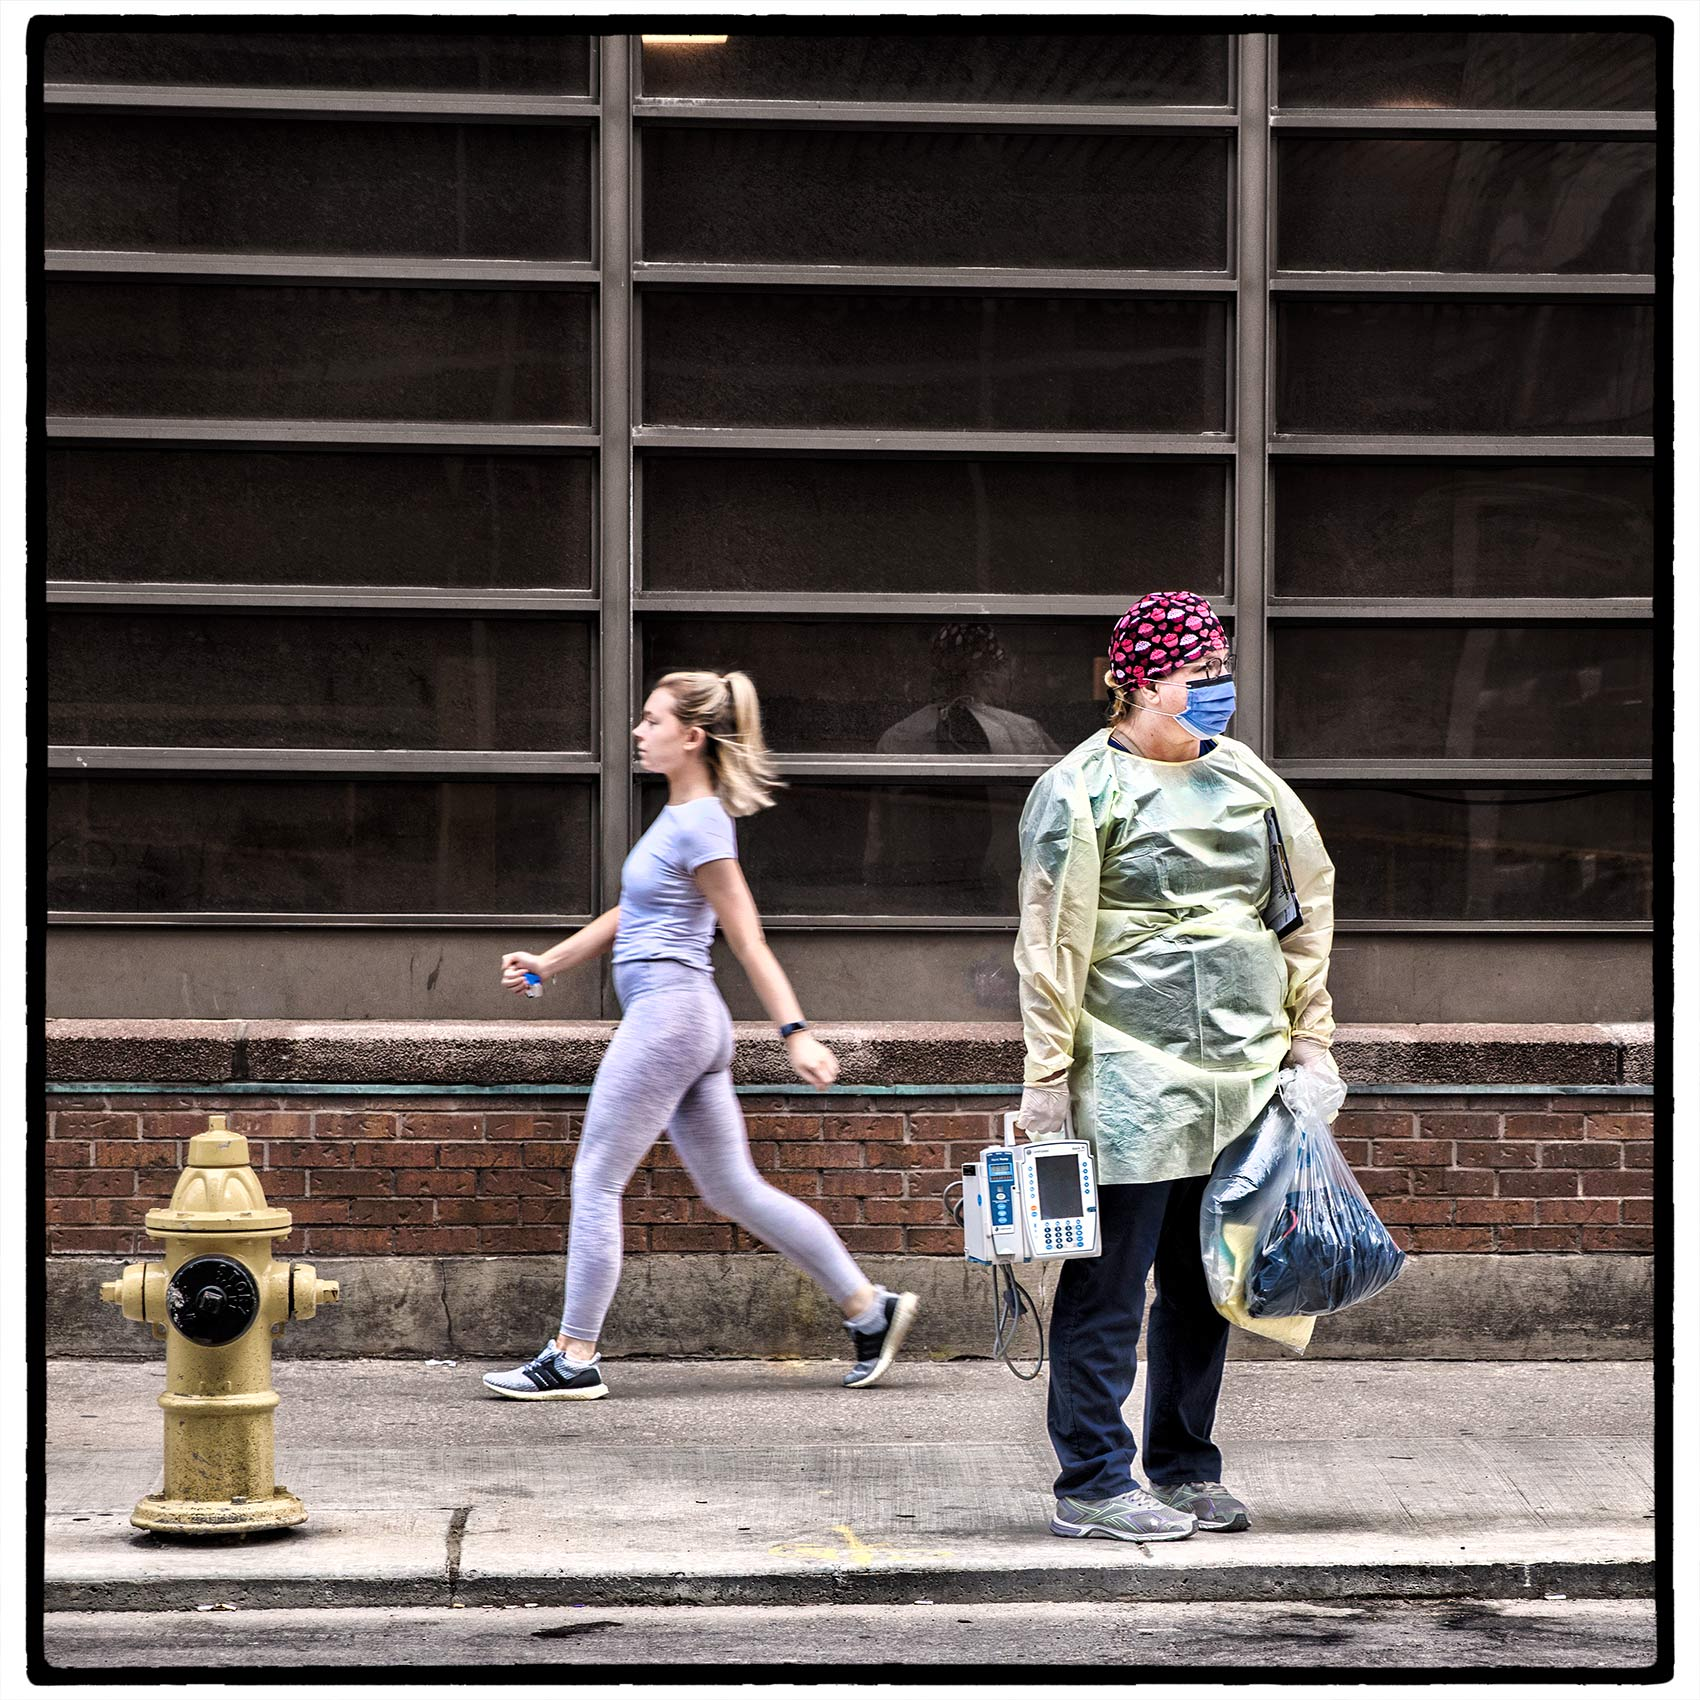 covid-nurse-wearing-personal-protective-equipment-with-young-woman-wearing-yoga-outfit-behind-her